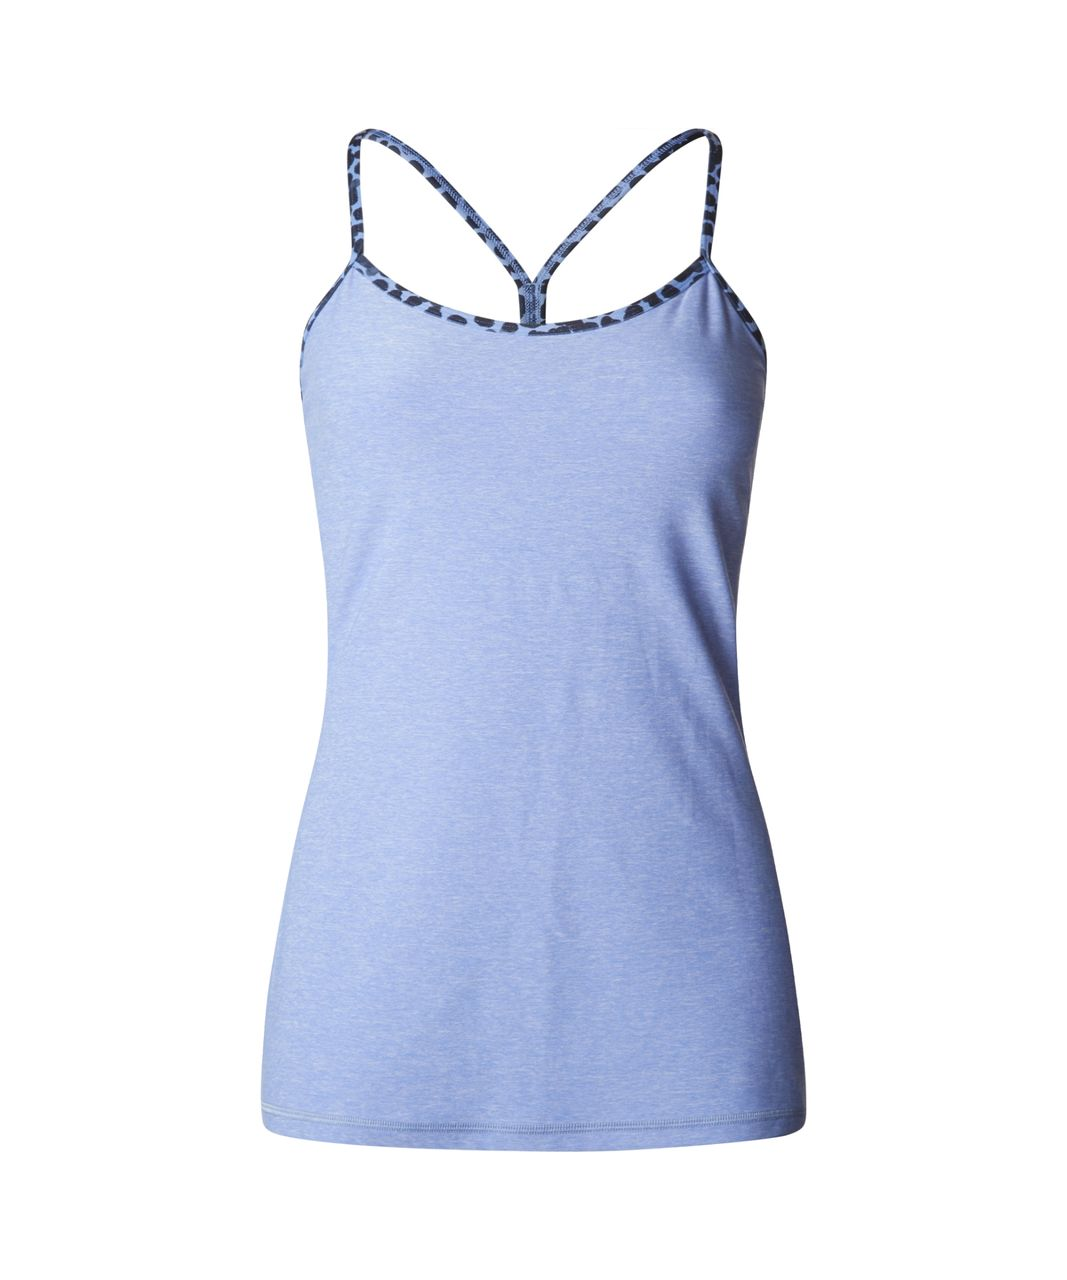 Lululemon Power Y Tank - Heathered Lullaby